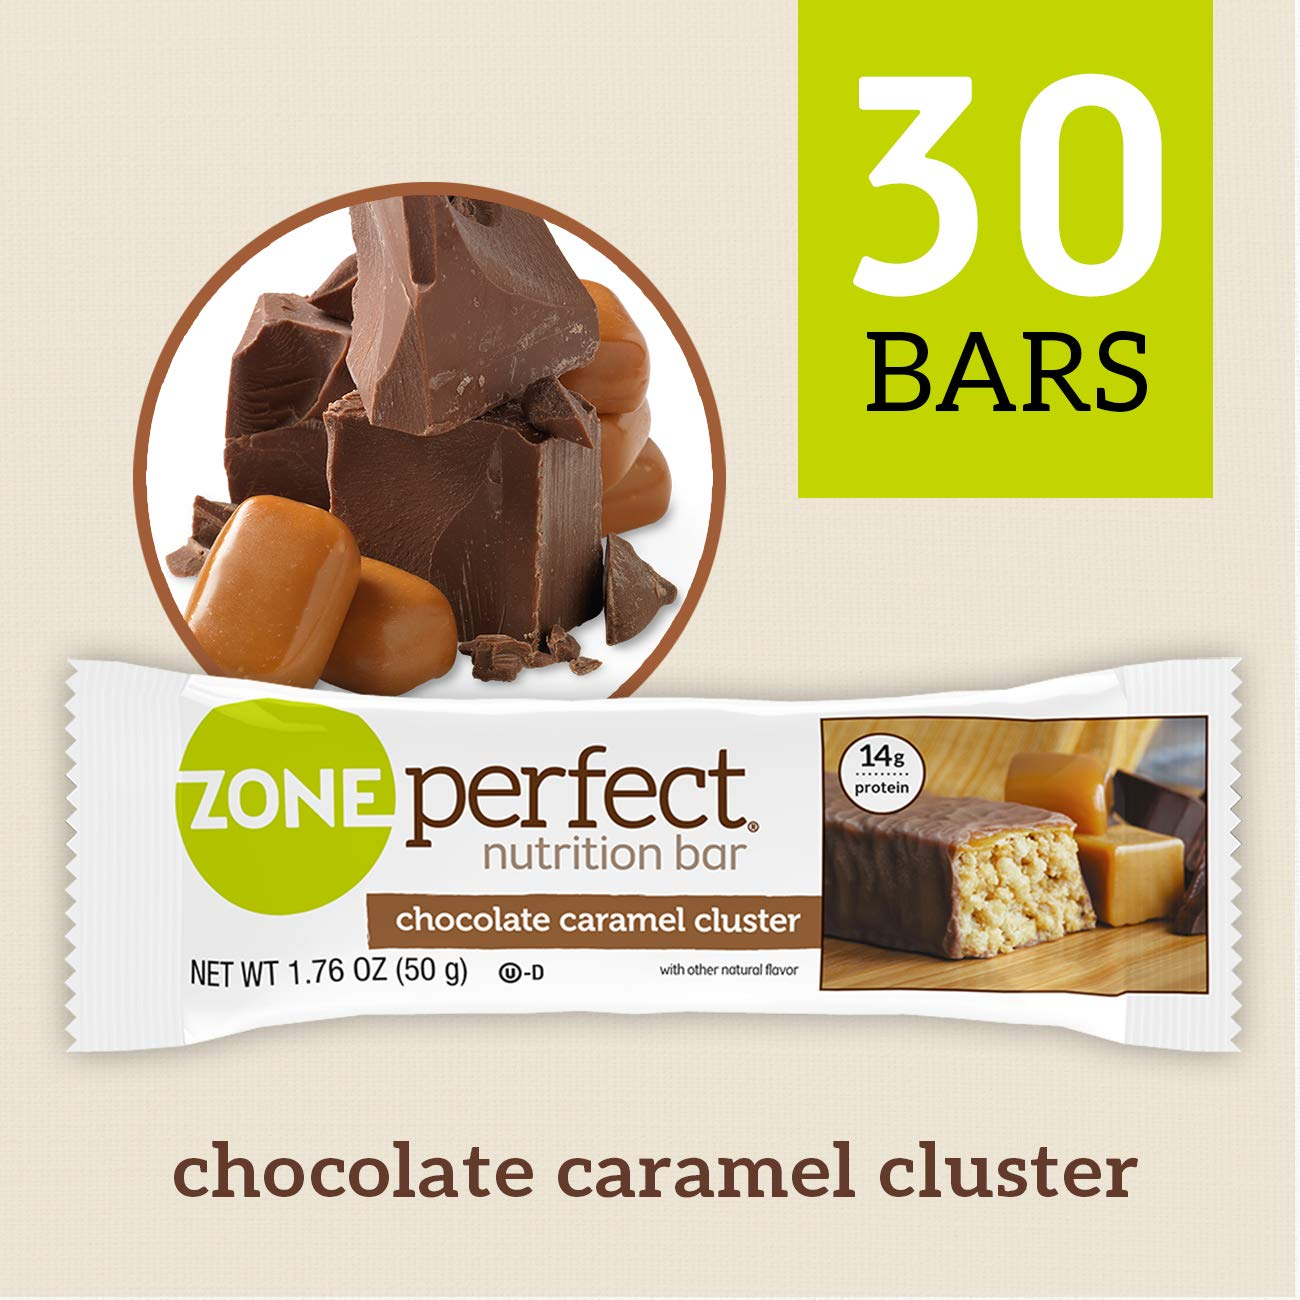 ZonePerfect Nutrition Snack Bars, Chocolate Caramel Cluster, 14g high-quality protein, 1.41 oz, 30 count by Zoneperfect Classic